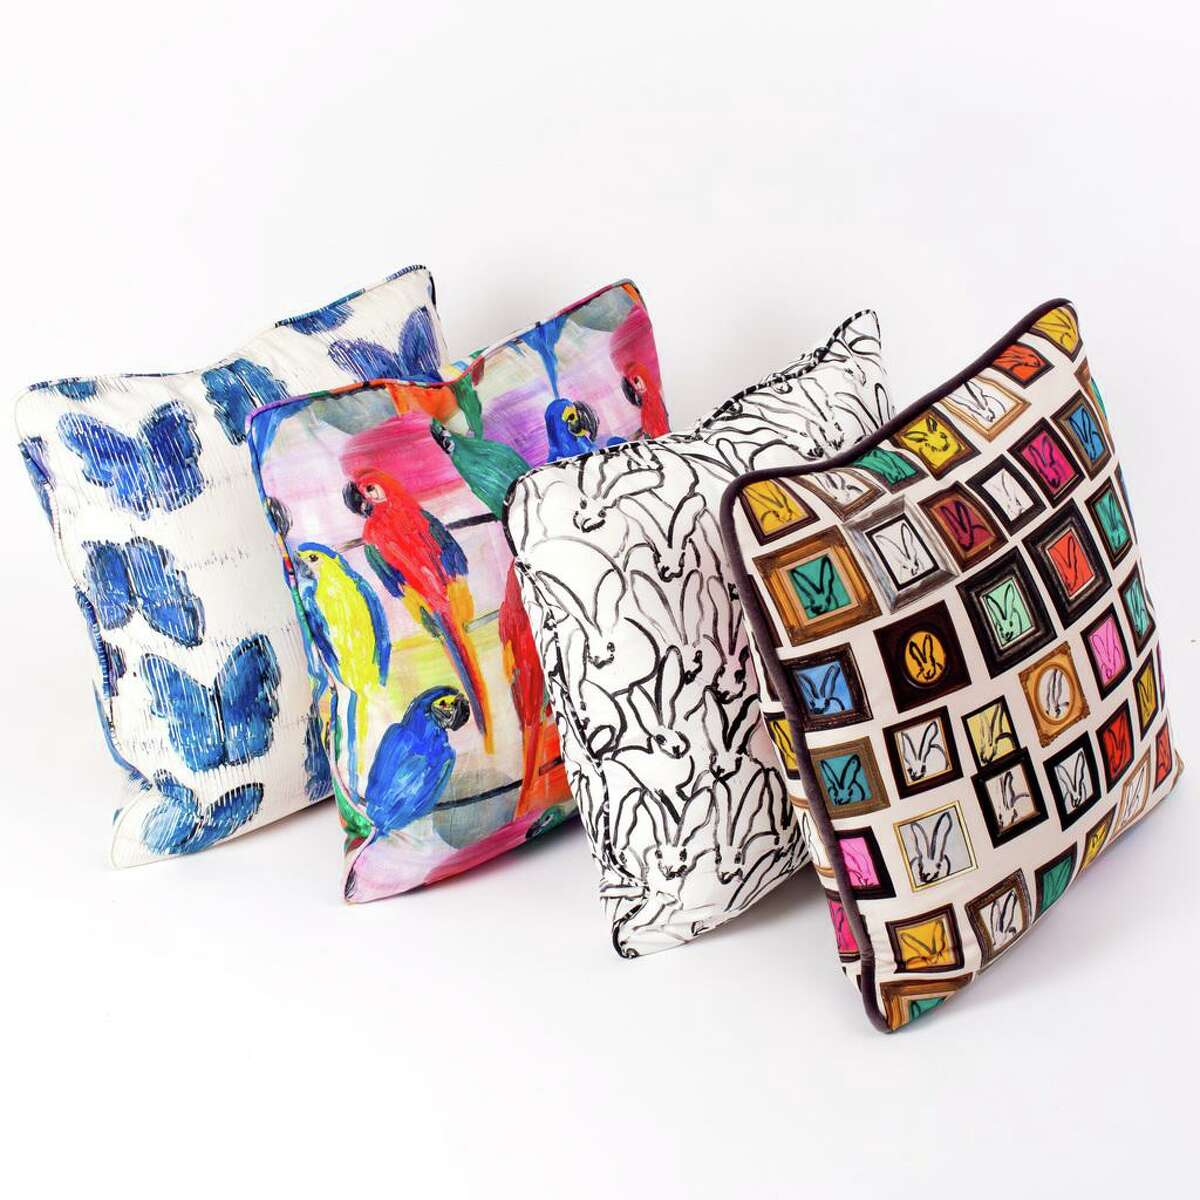 Artist Hunt Slonem has a new collection of home goods emblazoned with his cheerful drawings of bunnies and parrots. These cotton pillow covers are 22x22 and cost $325 each.